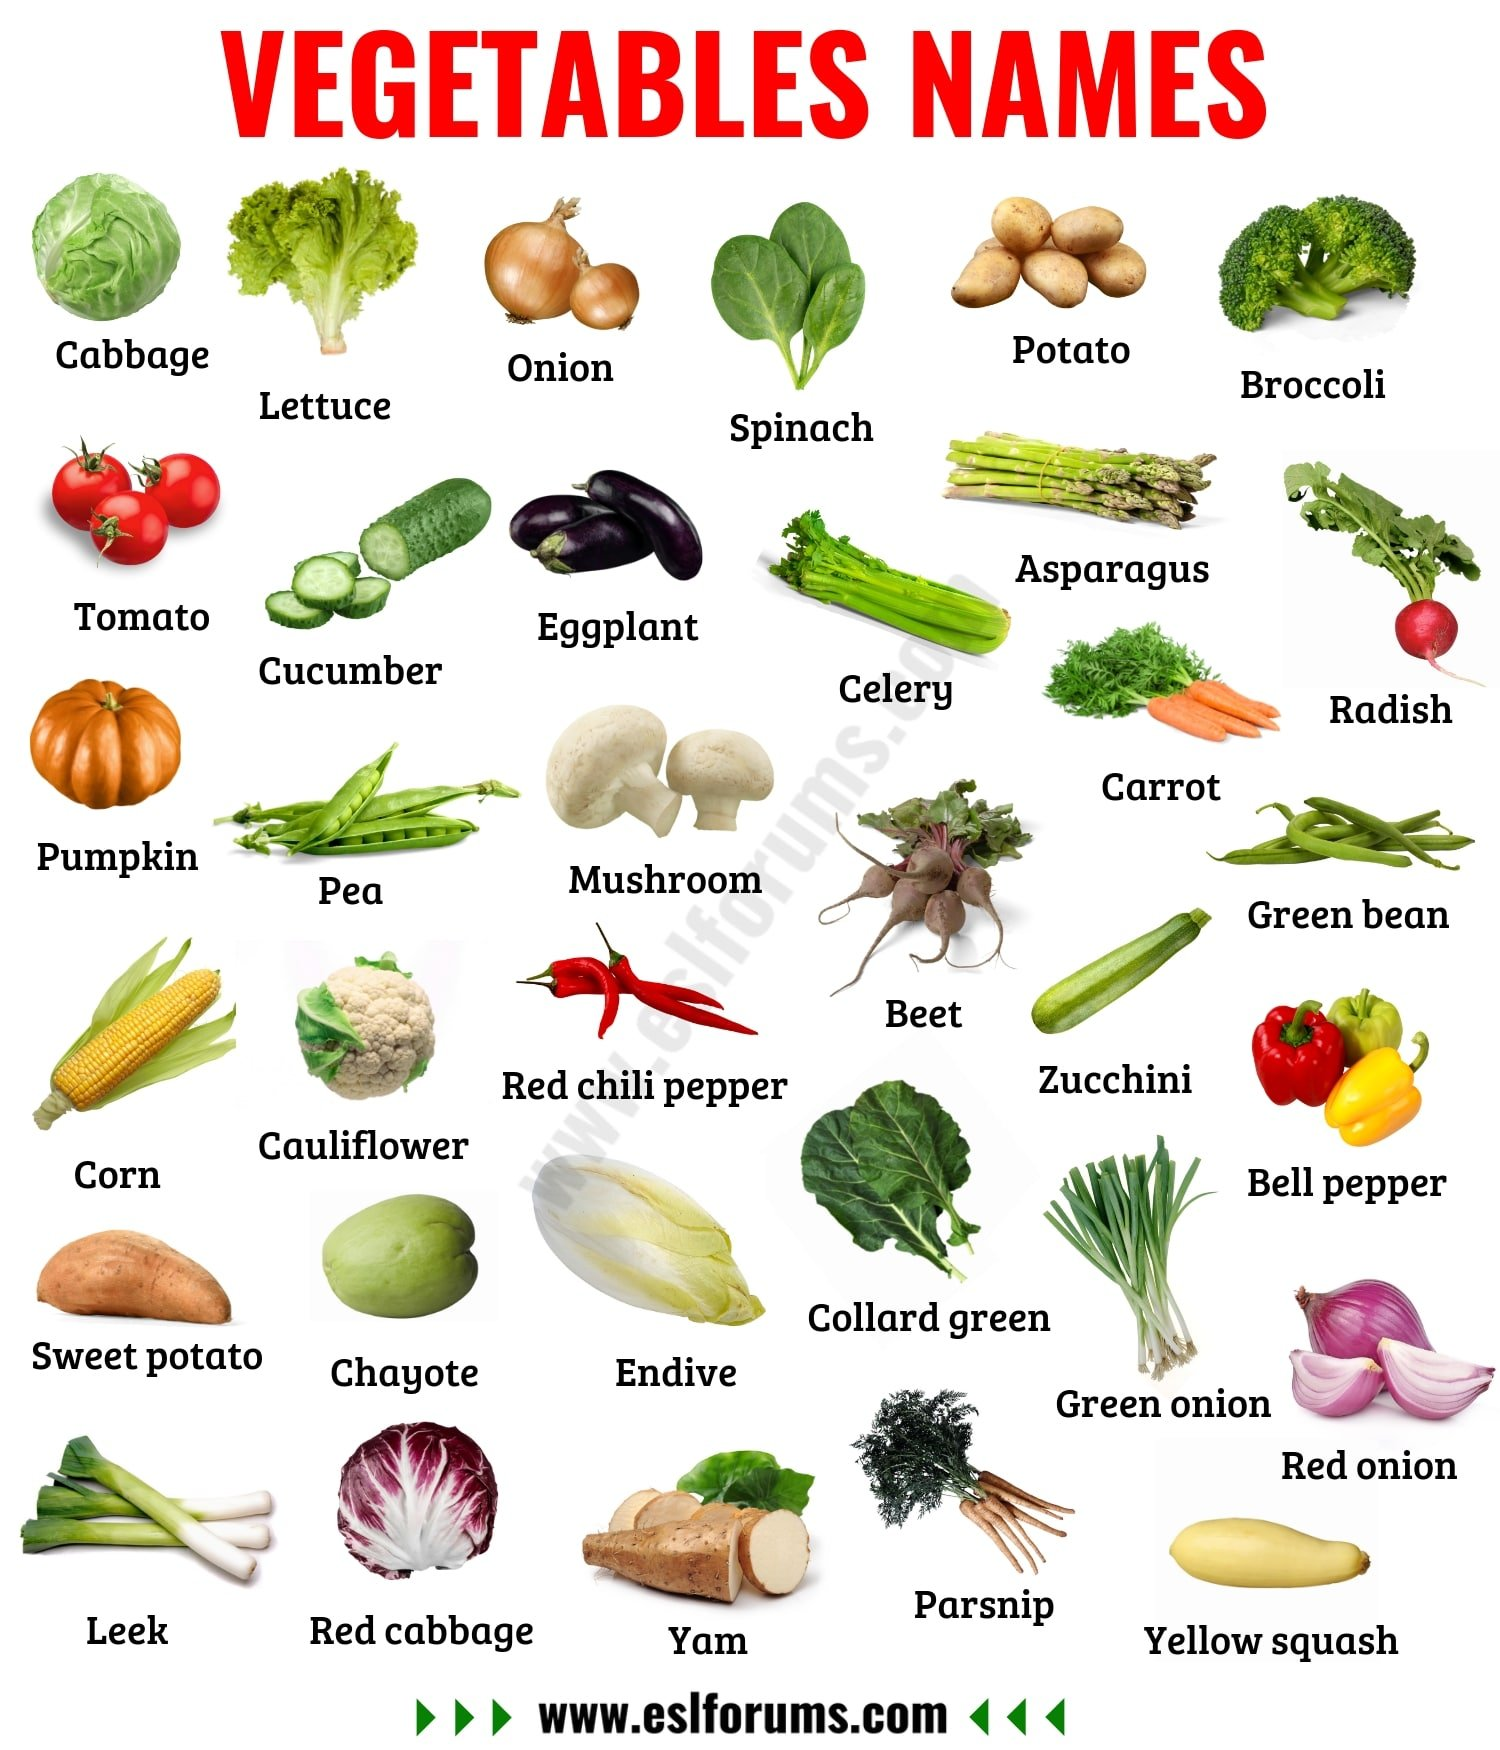 Vegetable Names: Learn Different Types of Vegetables with Pictures